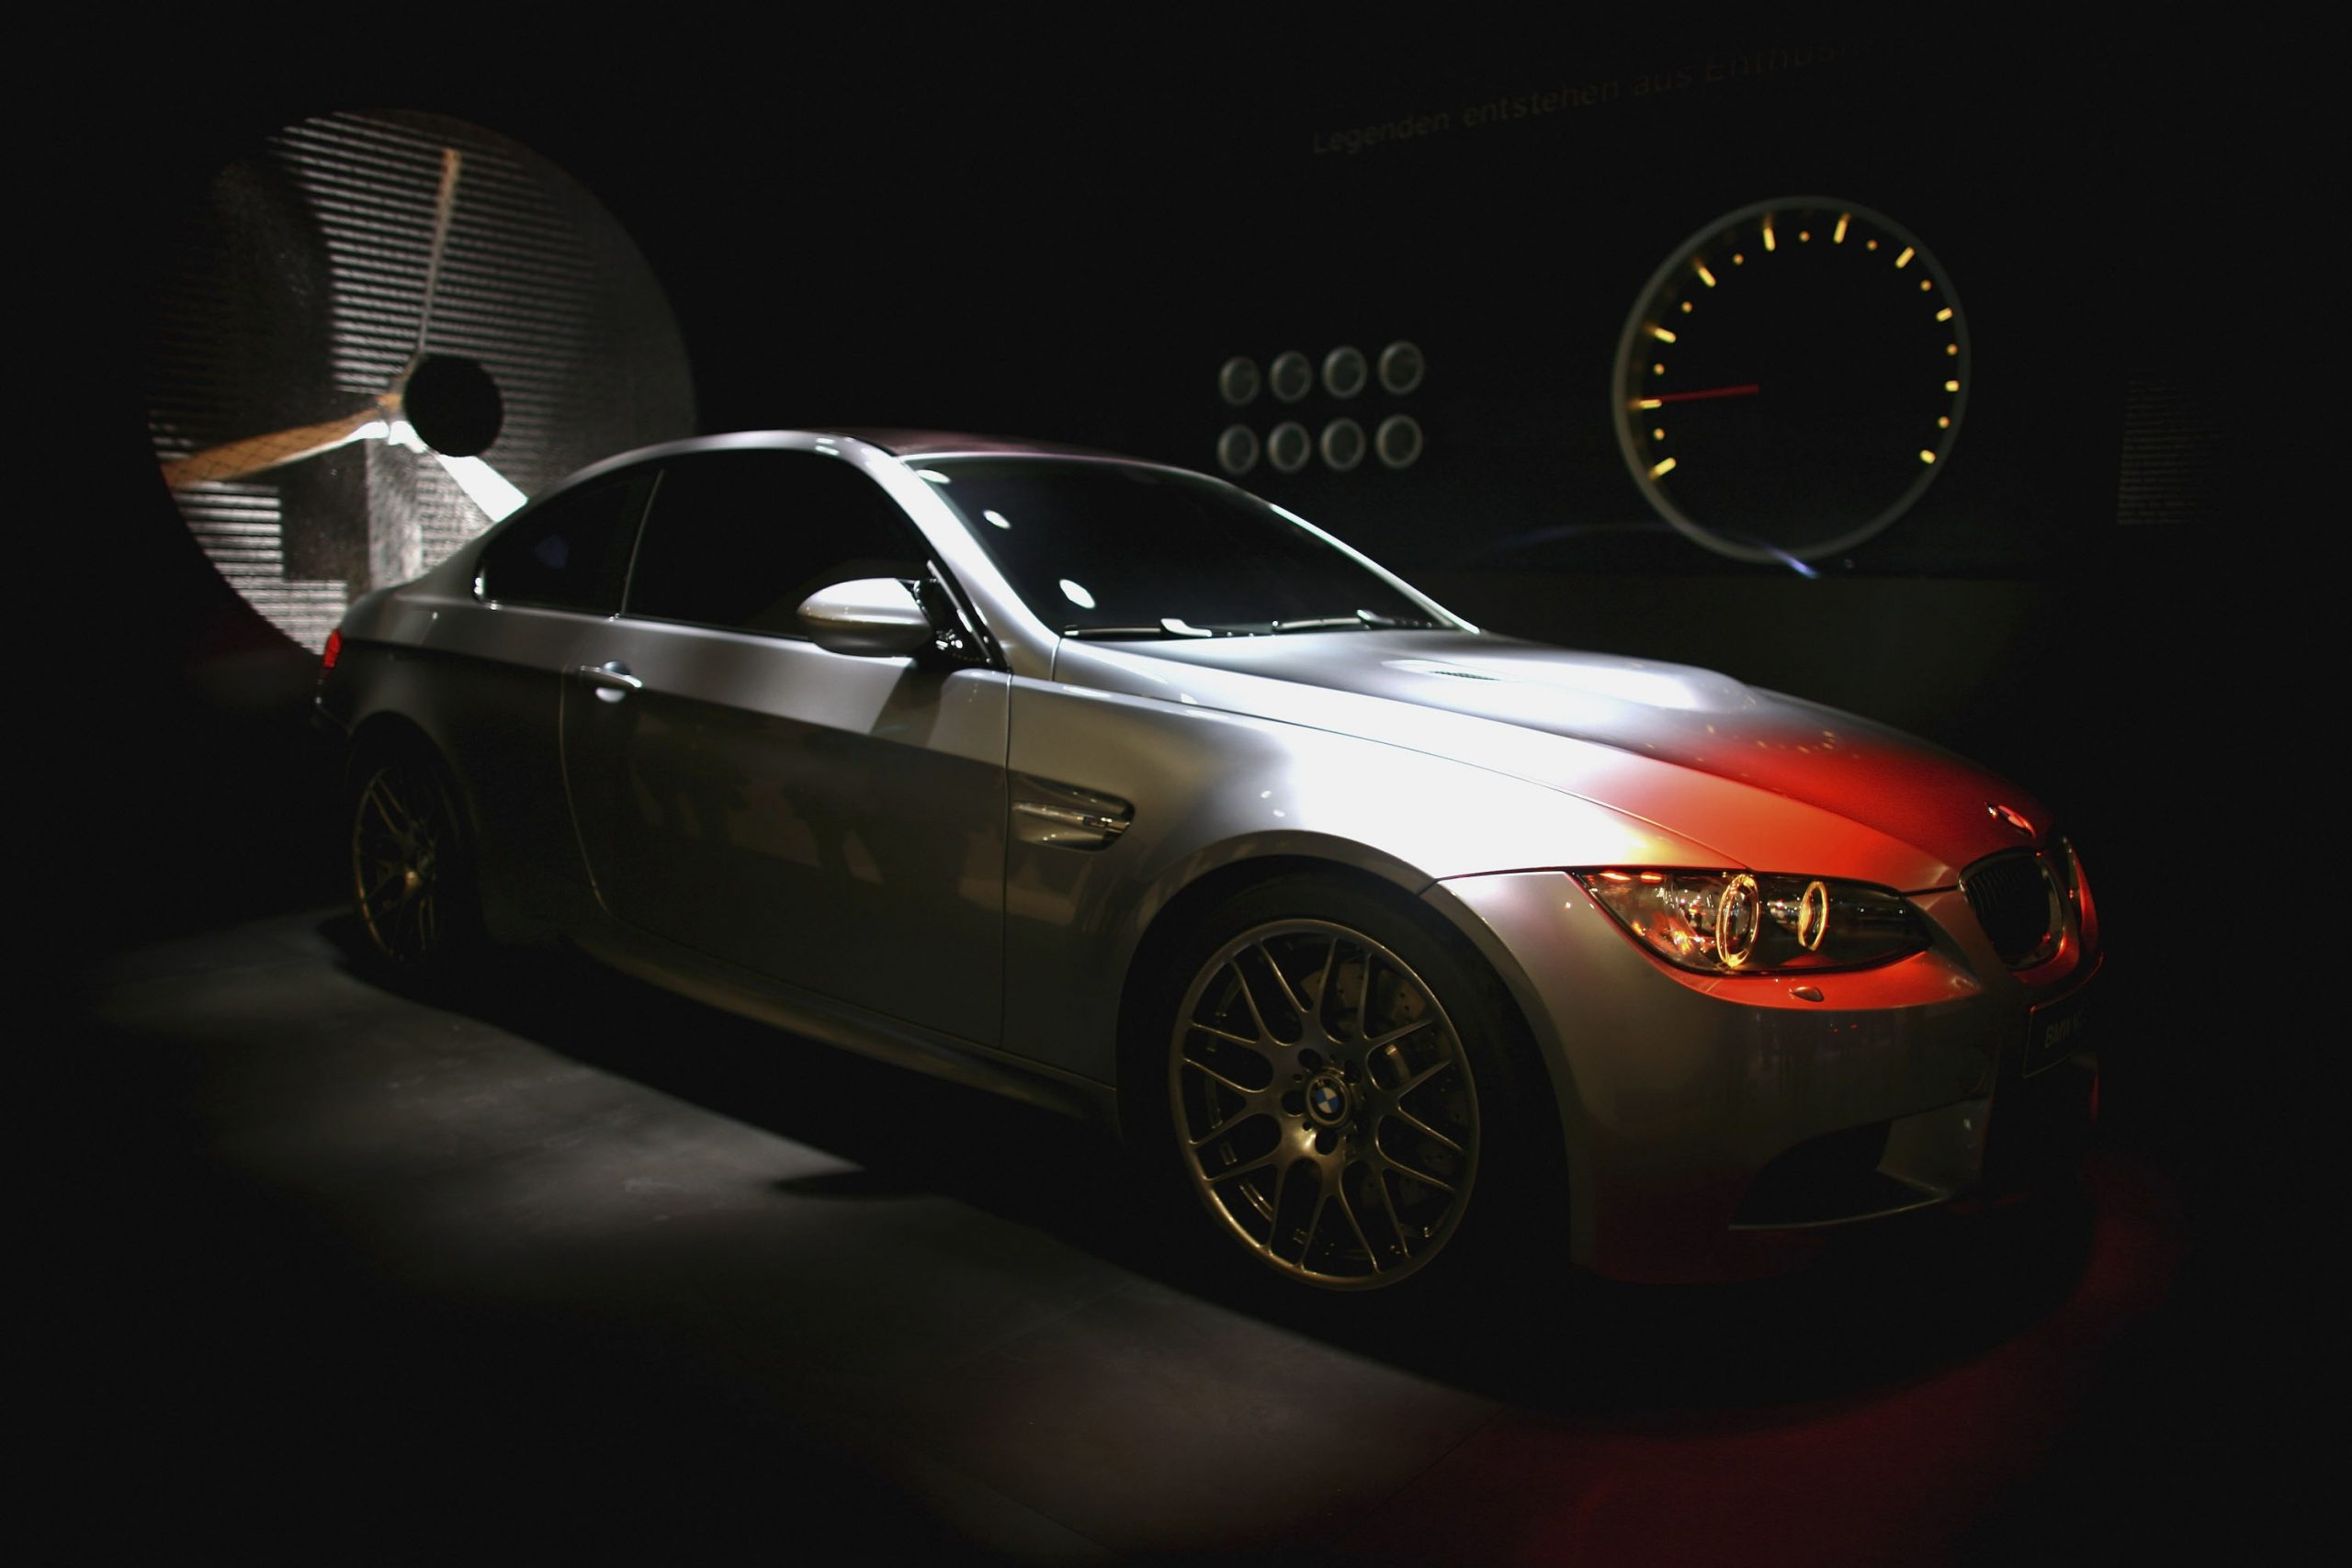 A silver E92 generation BMW M3 shot in the shadows from the front 3/4